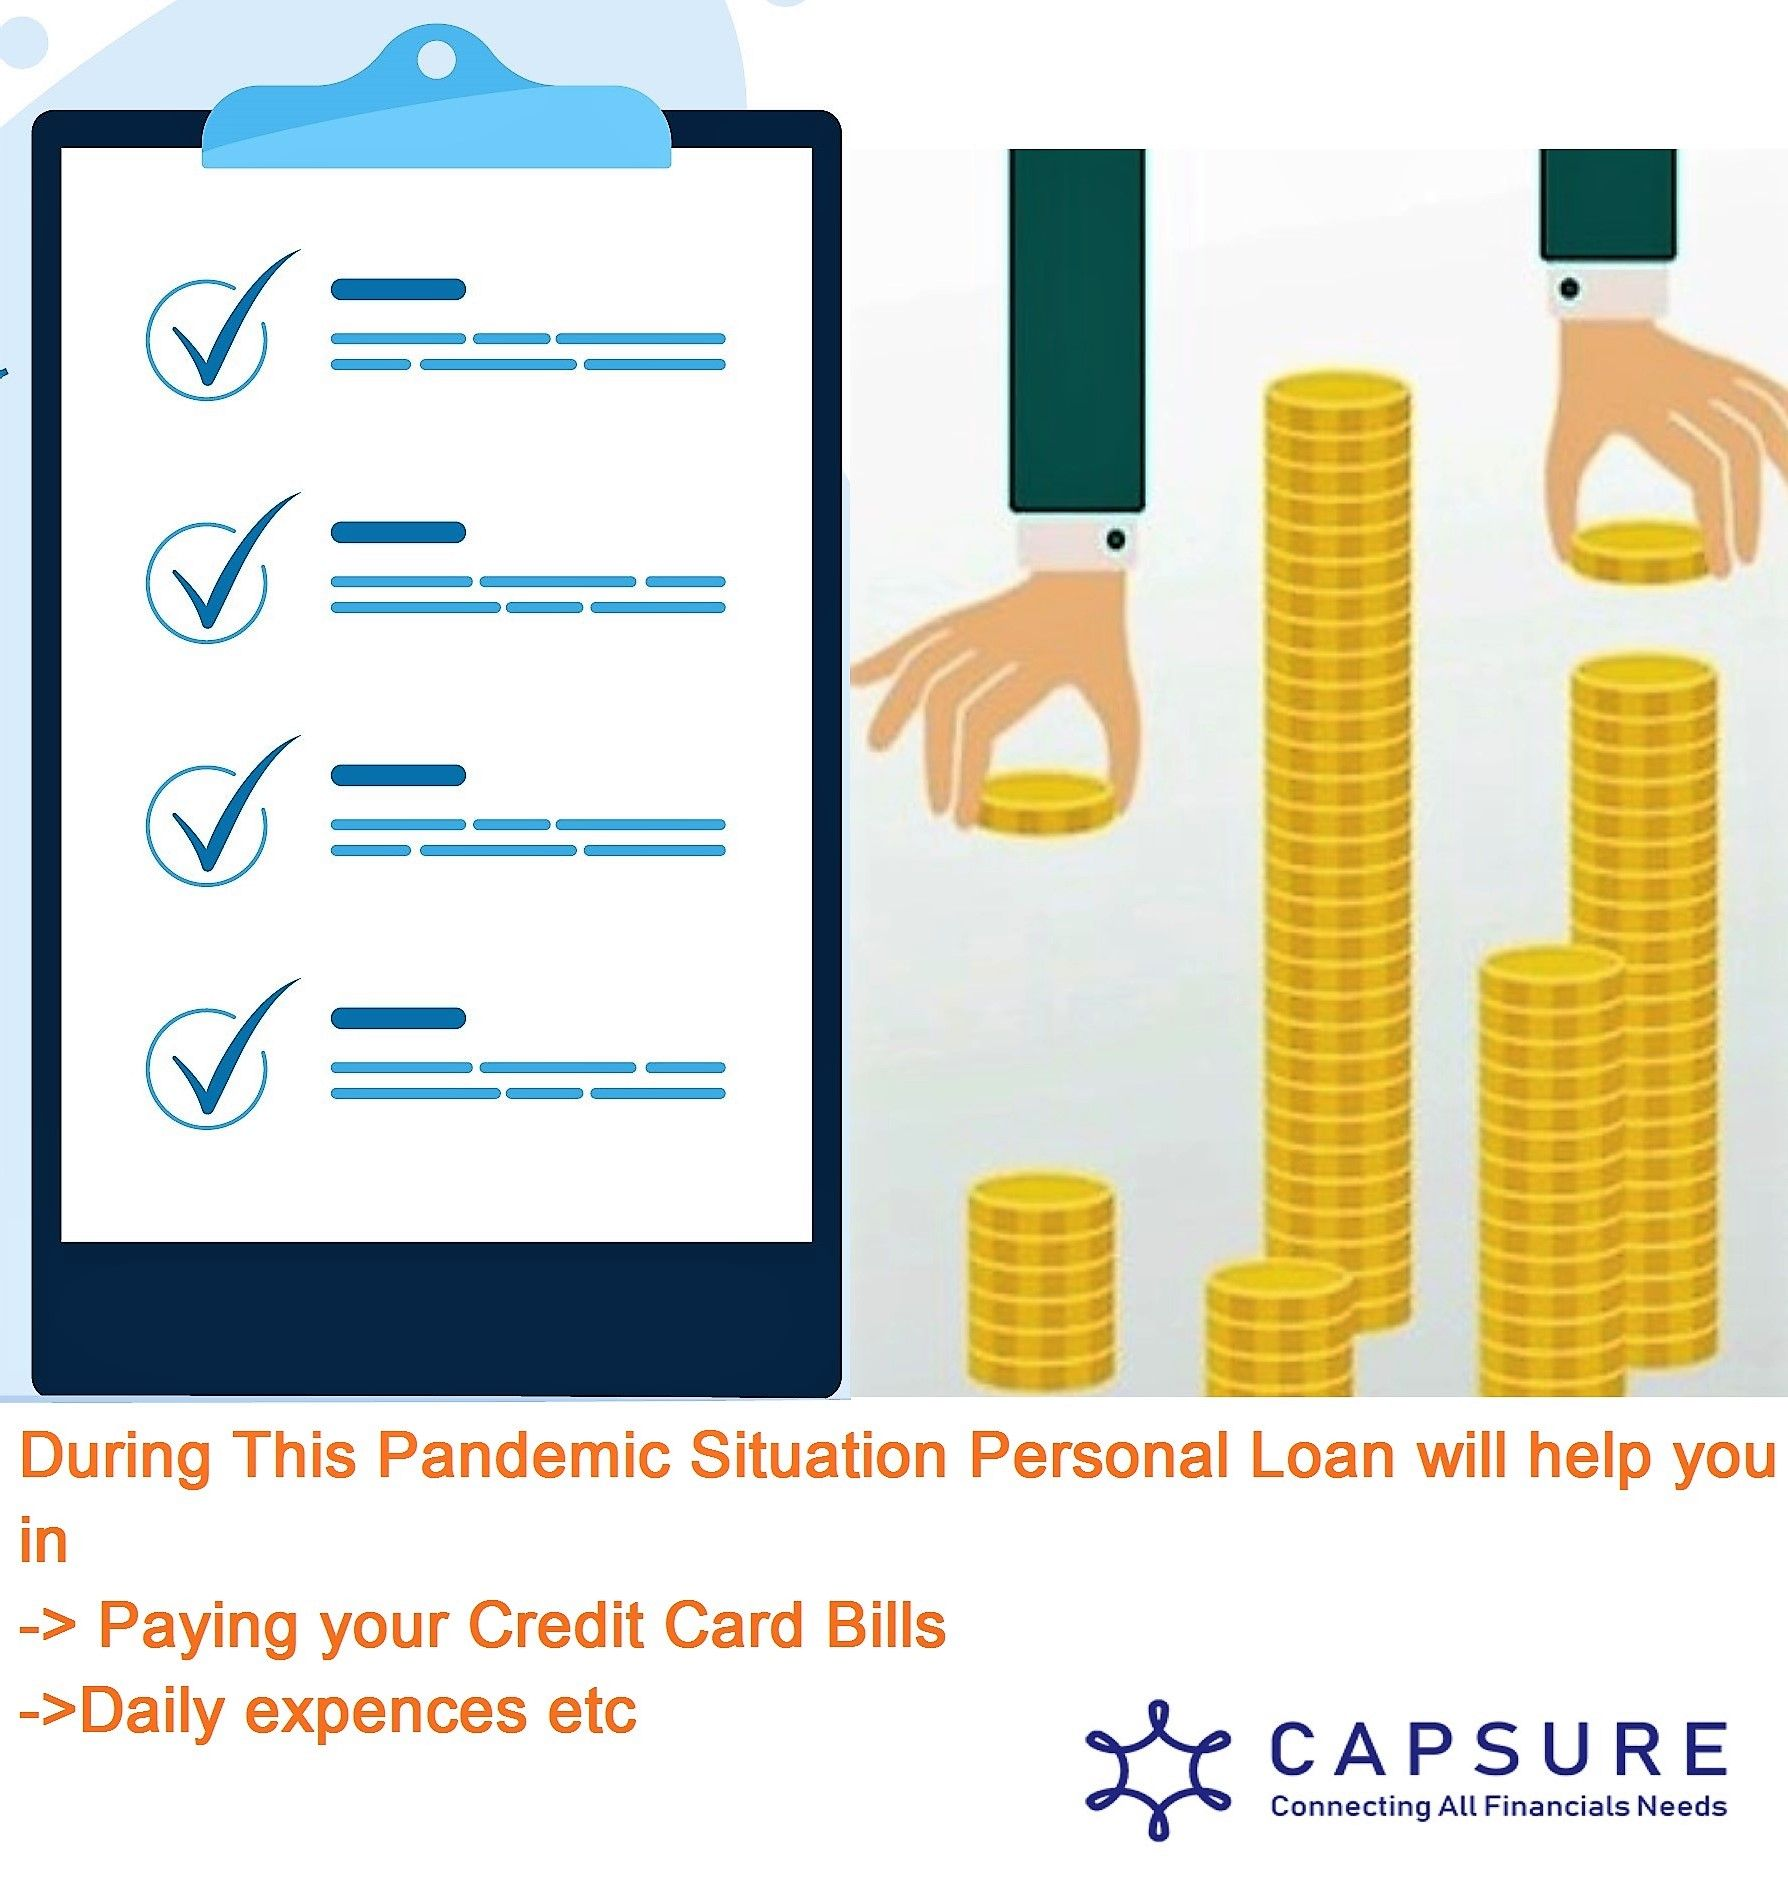 Personal Loan Bangalore In 2020 Personal Loans Financial News Marketing Services